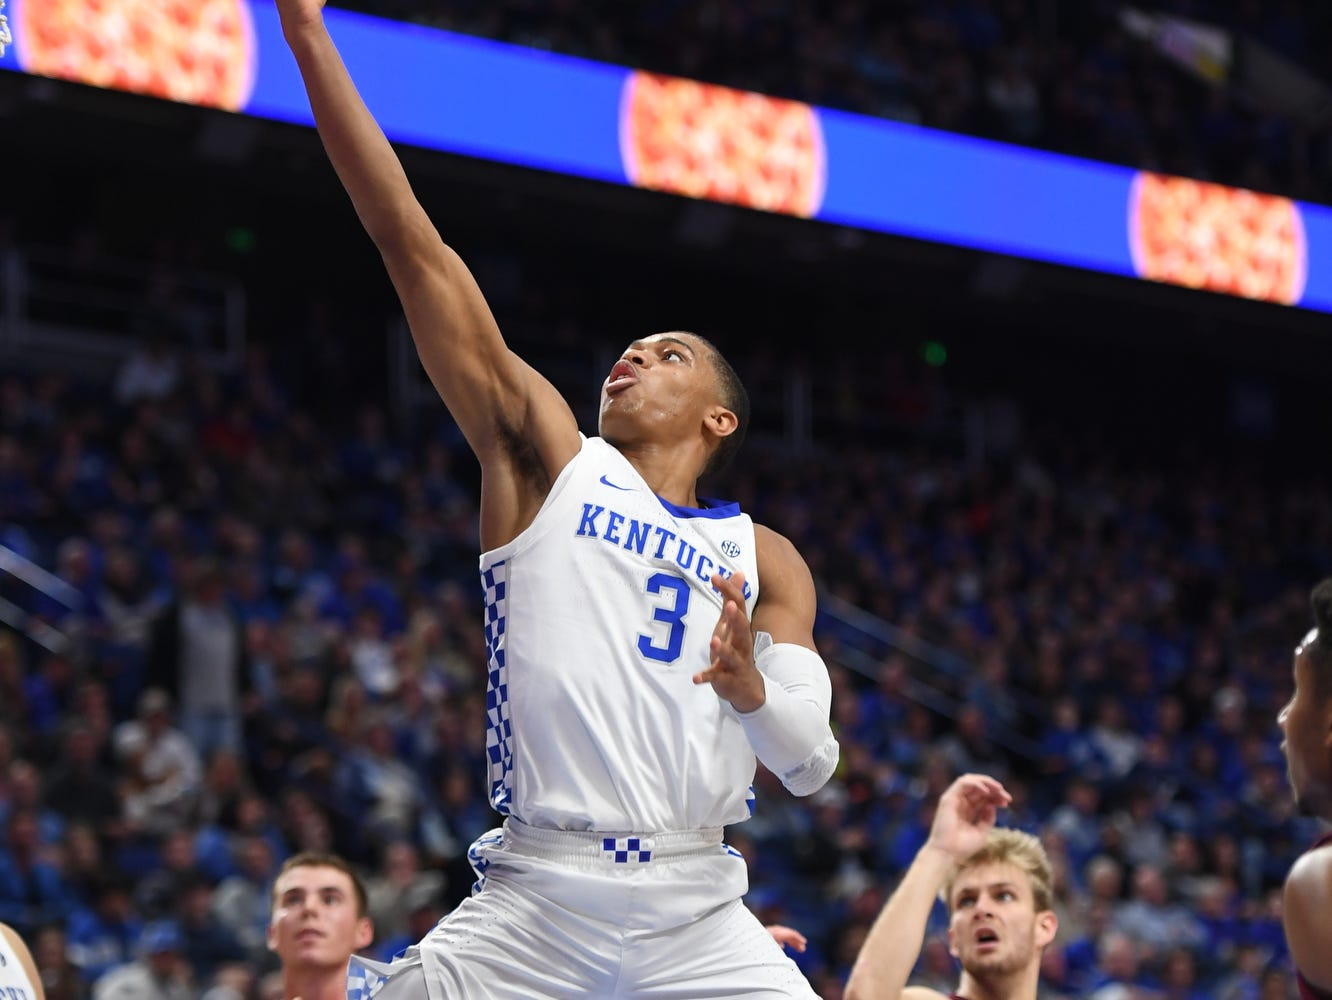 Keldon Johnson puts up the ball during the University of Kentucky basketball game against Transylvania at Rupp Arena in Lexington, Kentucky on Friday, Oct. 26, 2018.